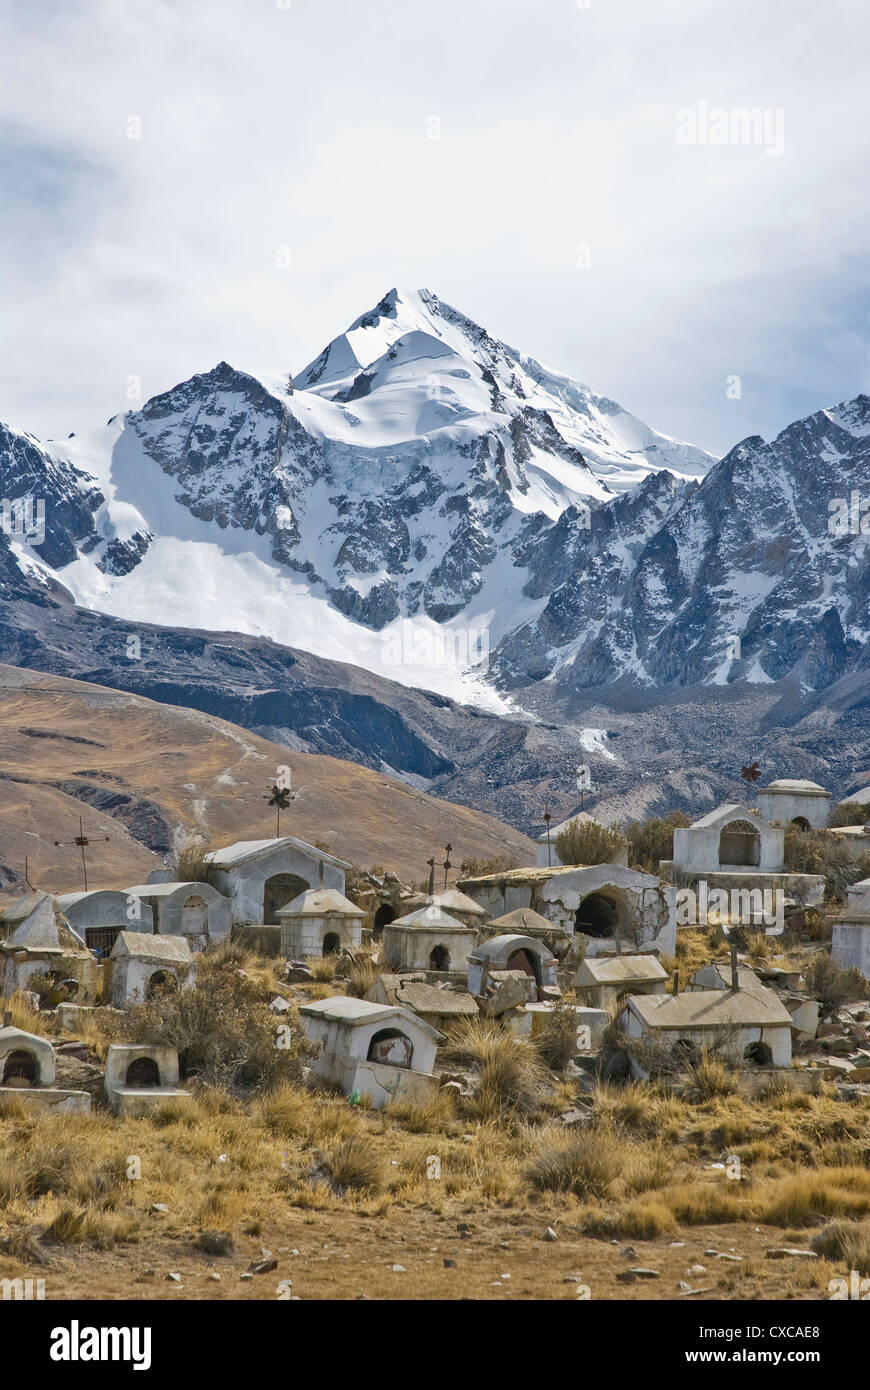 Cemetery of miners in Milluni with the mountain Huayna Potosi in the background - Stock Image